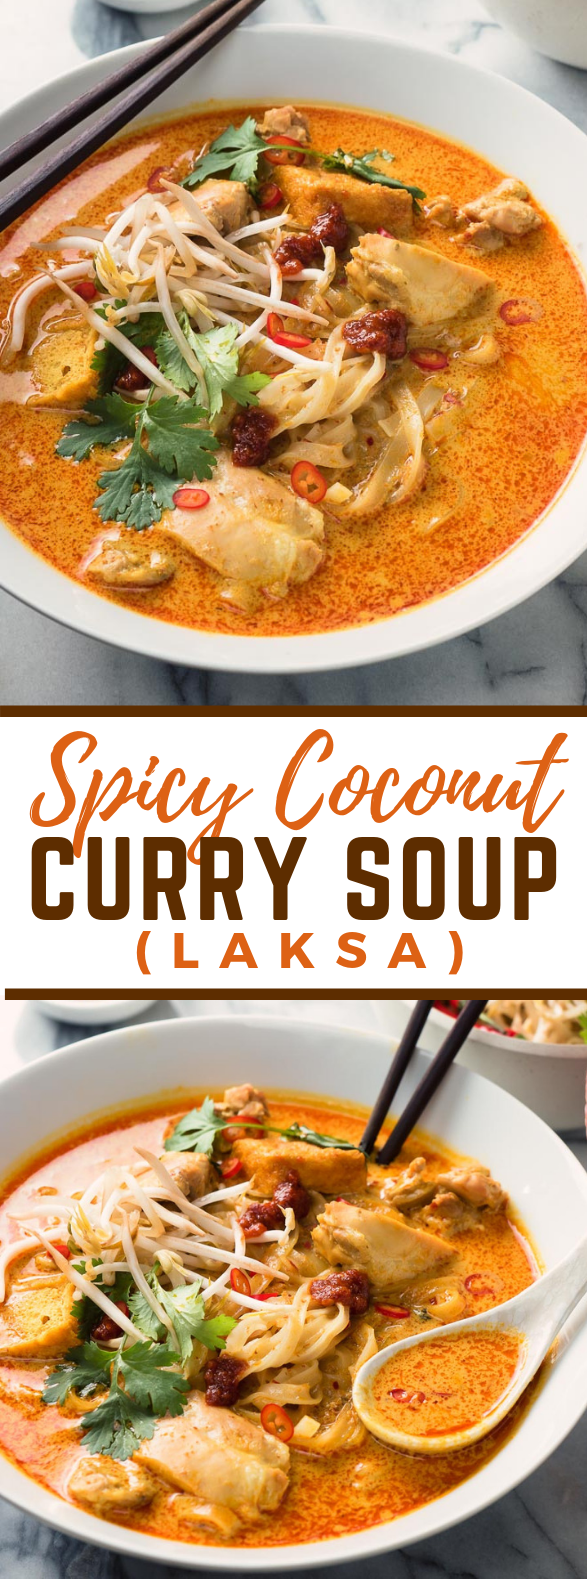 laksa - spicy coconut curry soup #asianfood #dinner